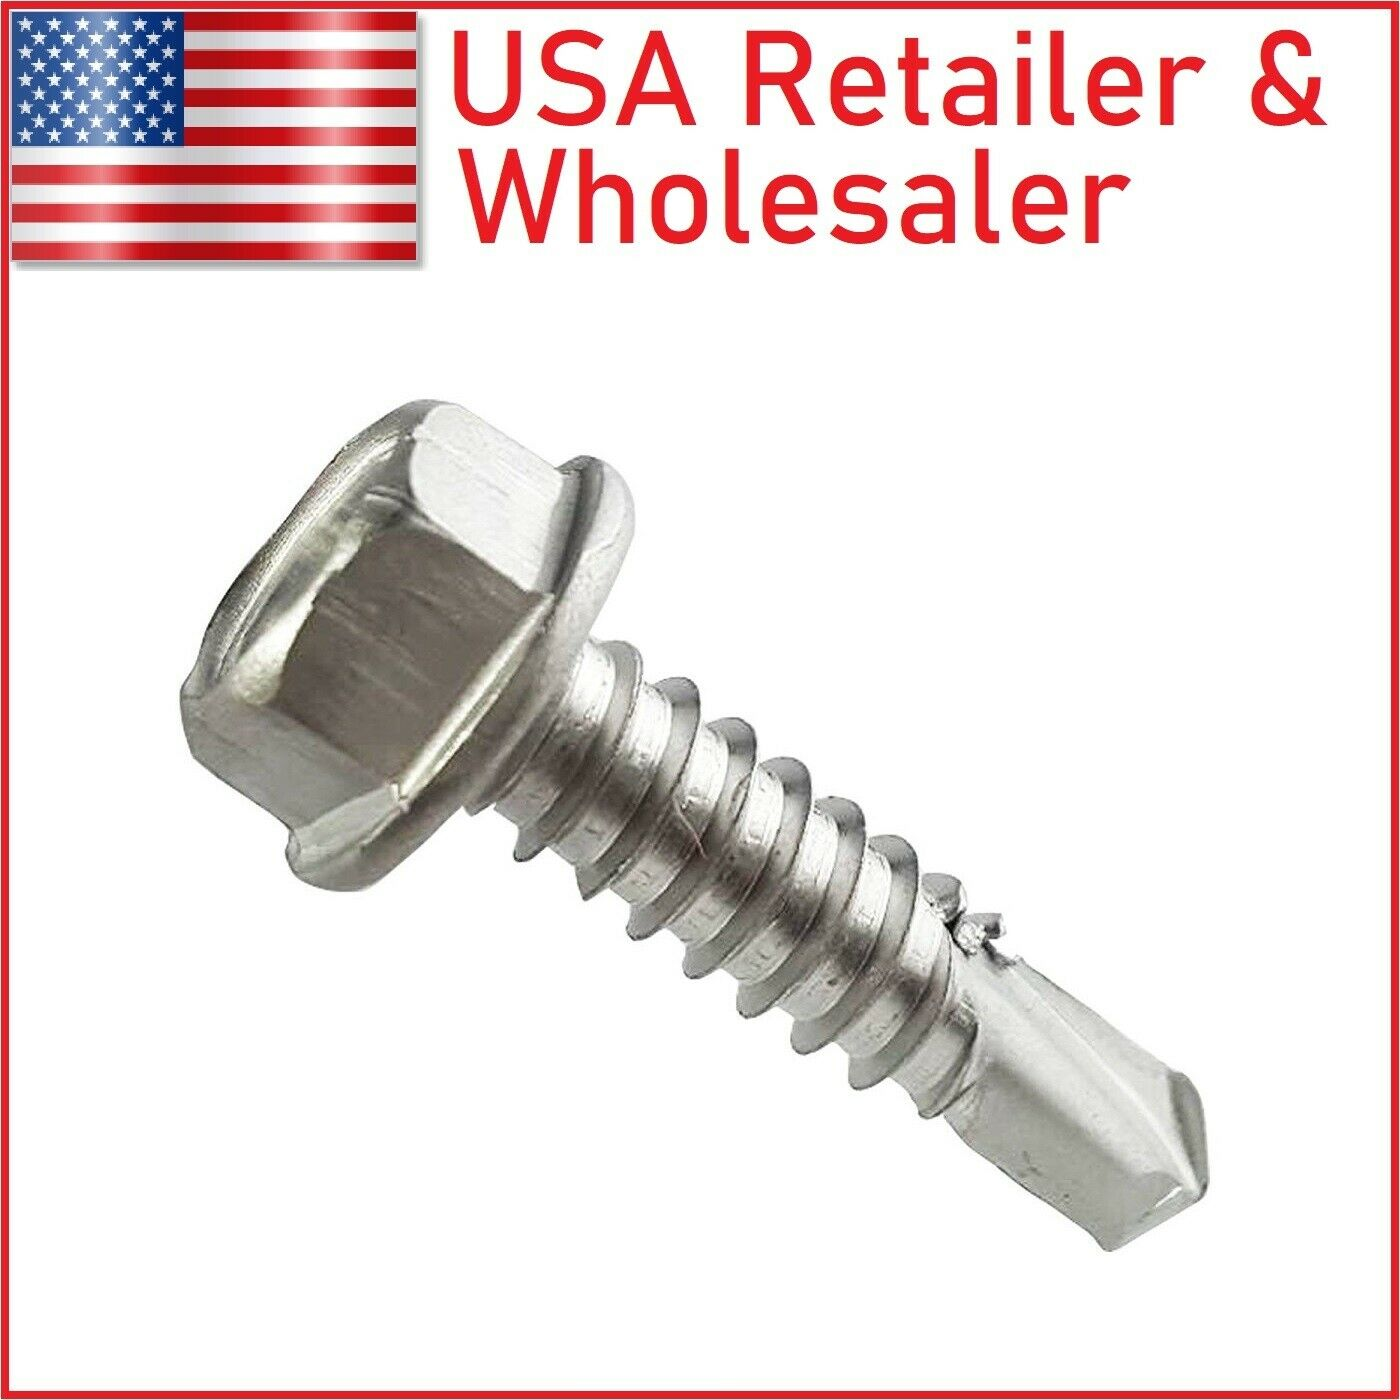 #8 Stainless Steel Hex Head Roofing Screws with Sealing Washer Self Drilling Stainless Steel Roofing Screws #8 x 1-1//2 inch Qty 1,000